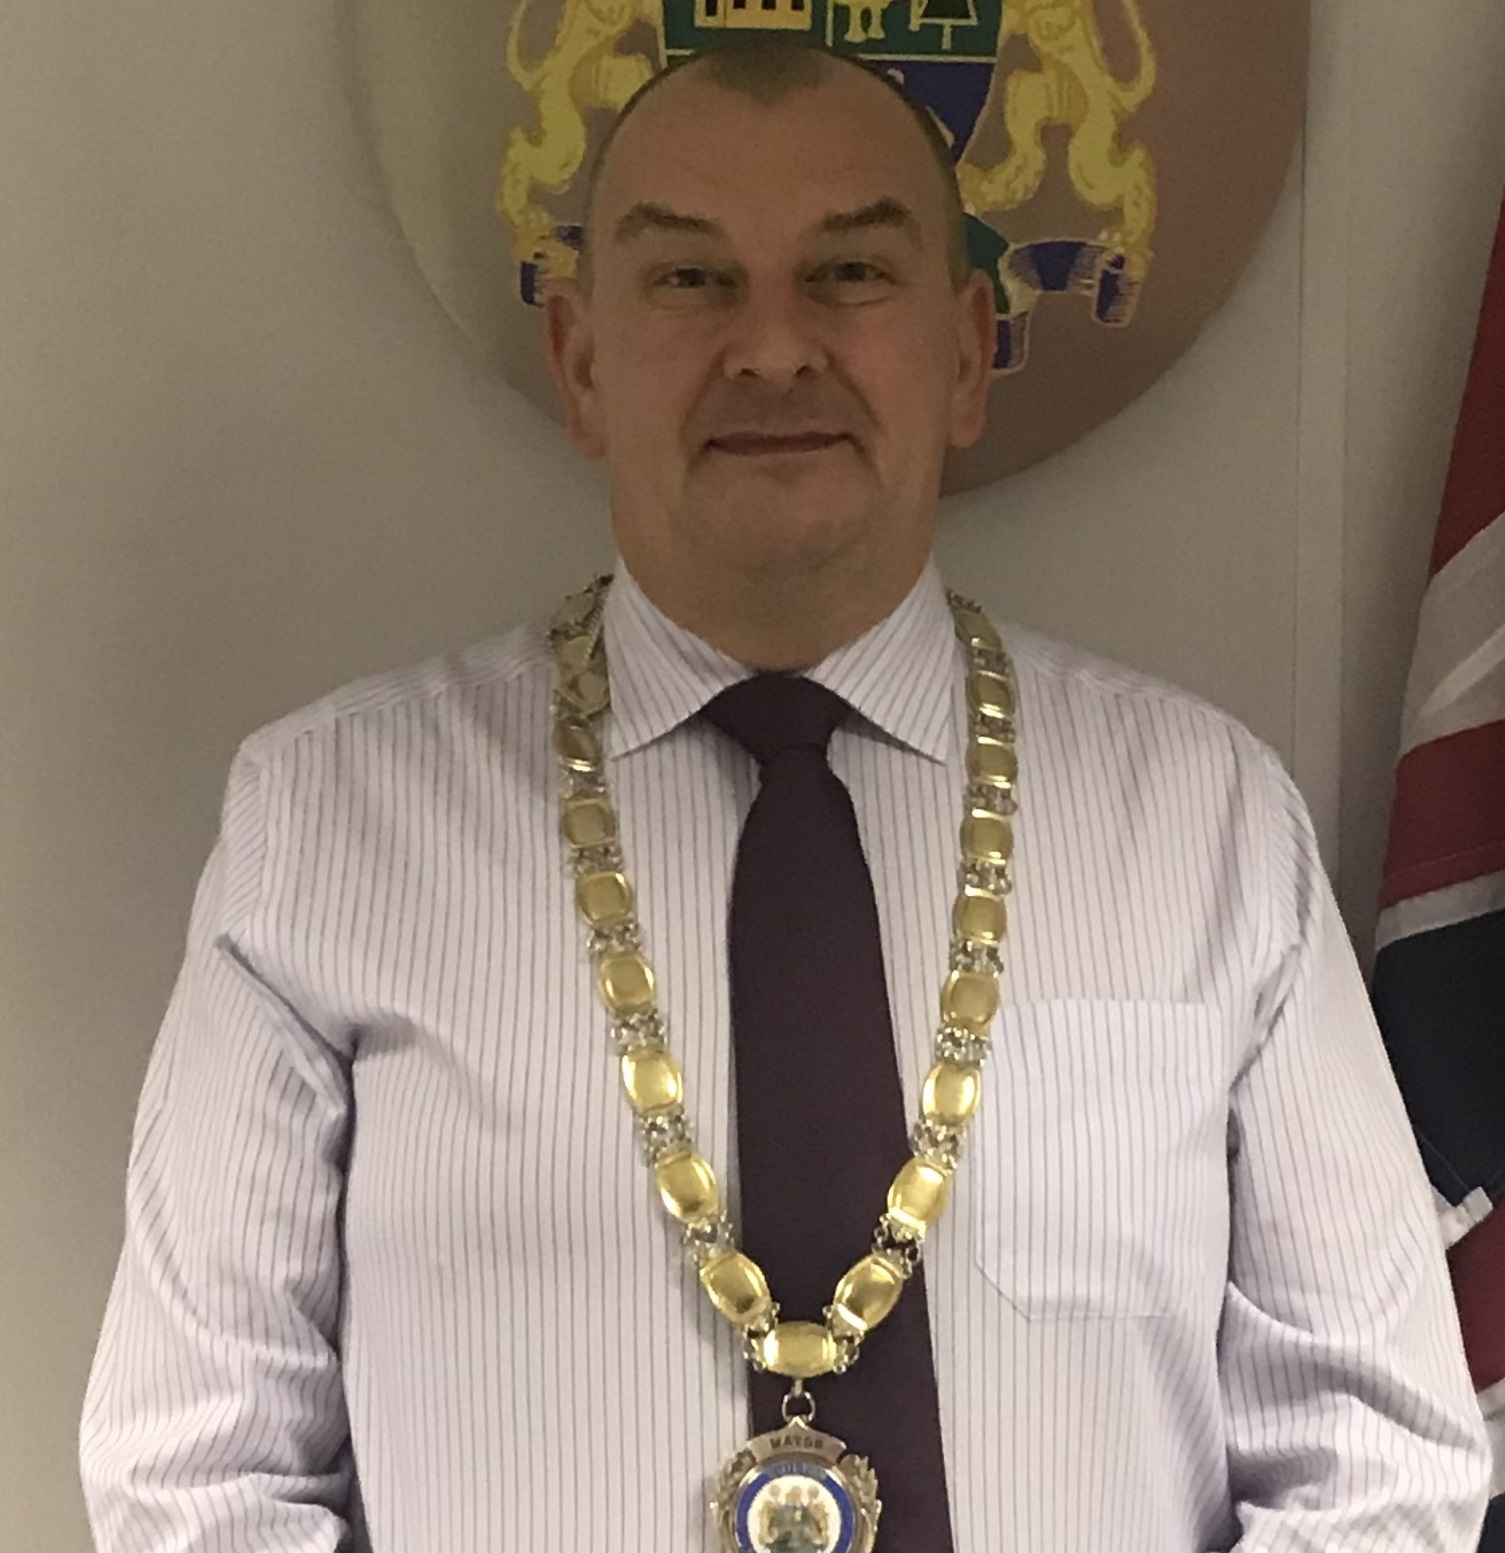 NEW MAYOR: Chilton Mayor Councillor Michael Young